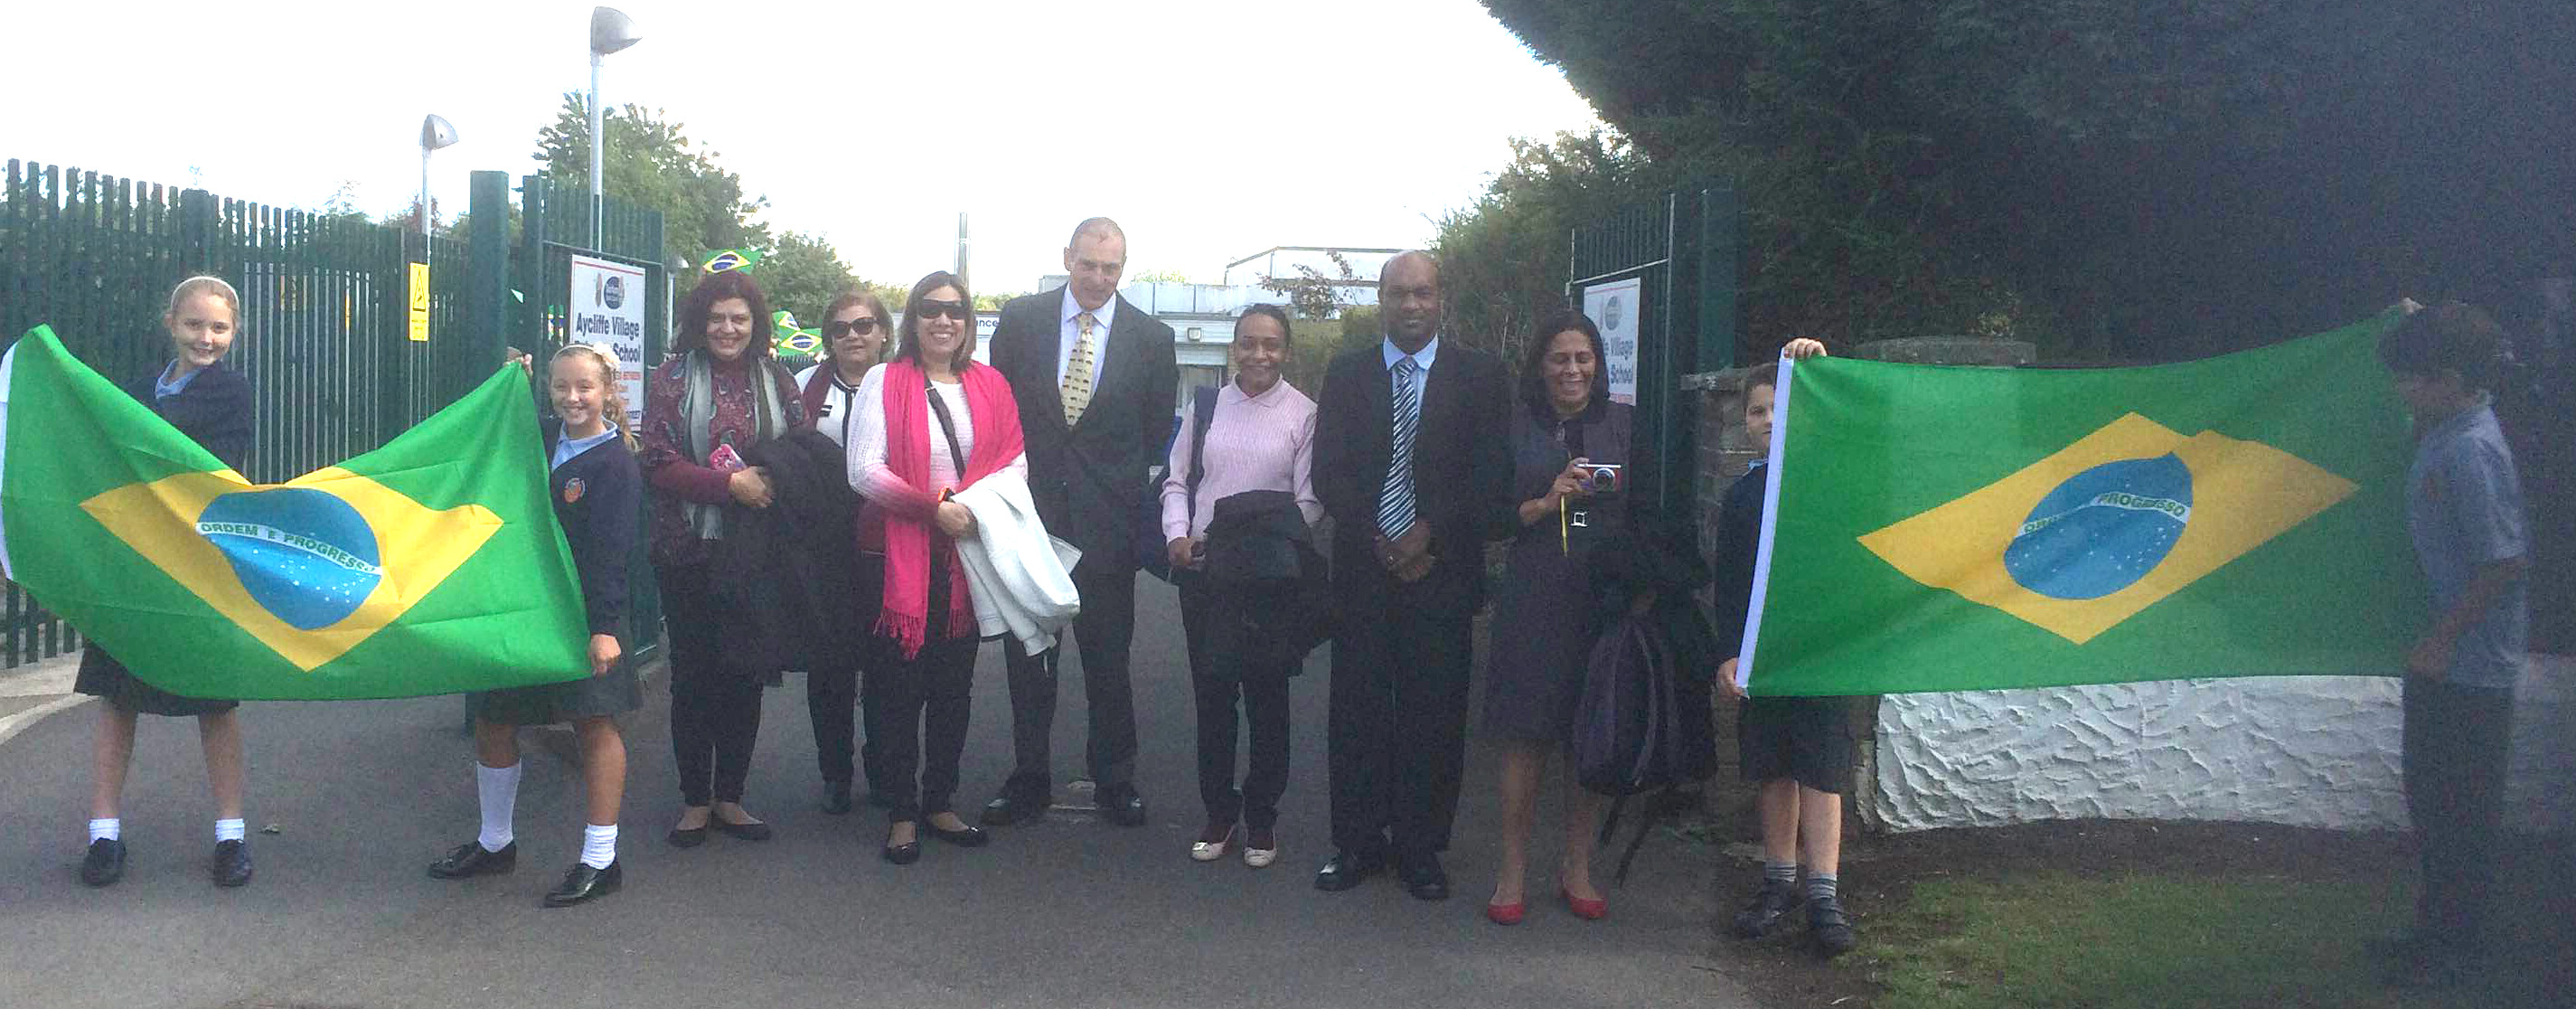 Brazilian Teachers Visit Aycliffe Village School